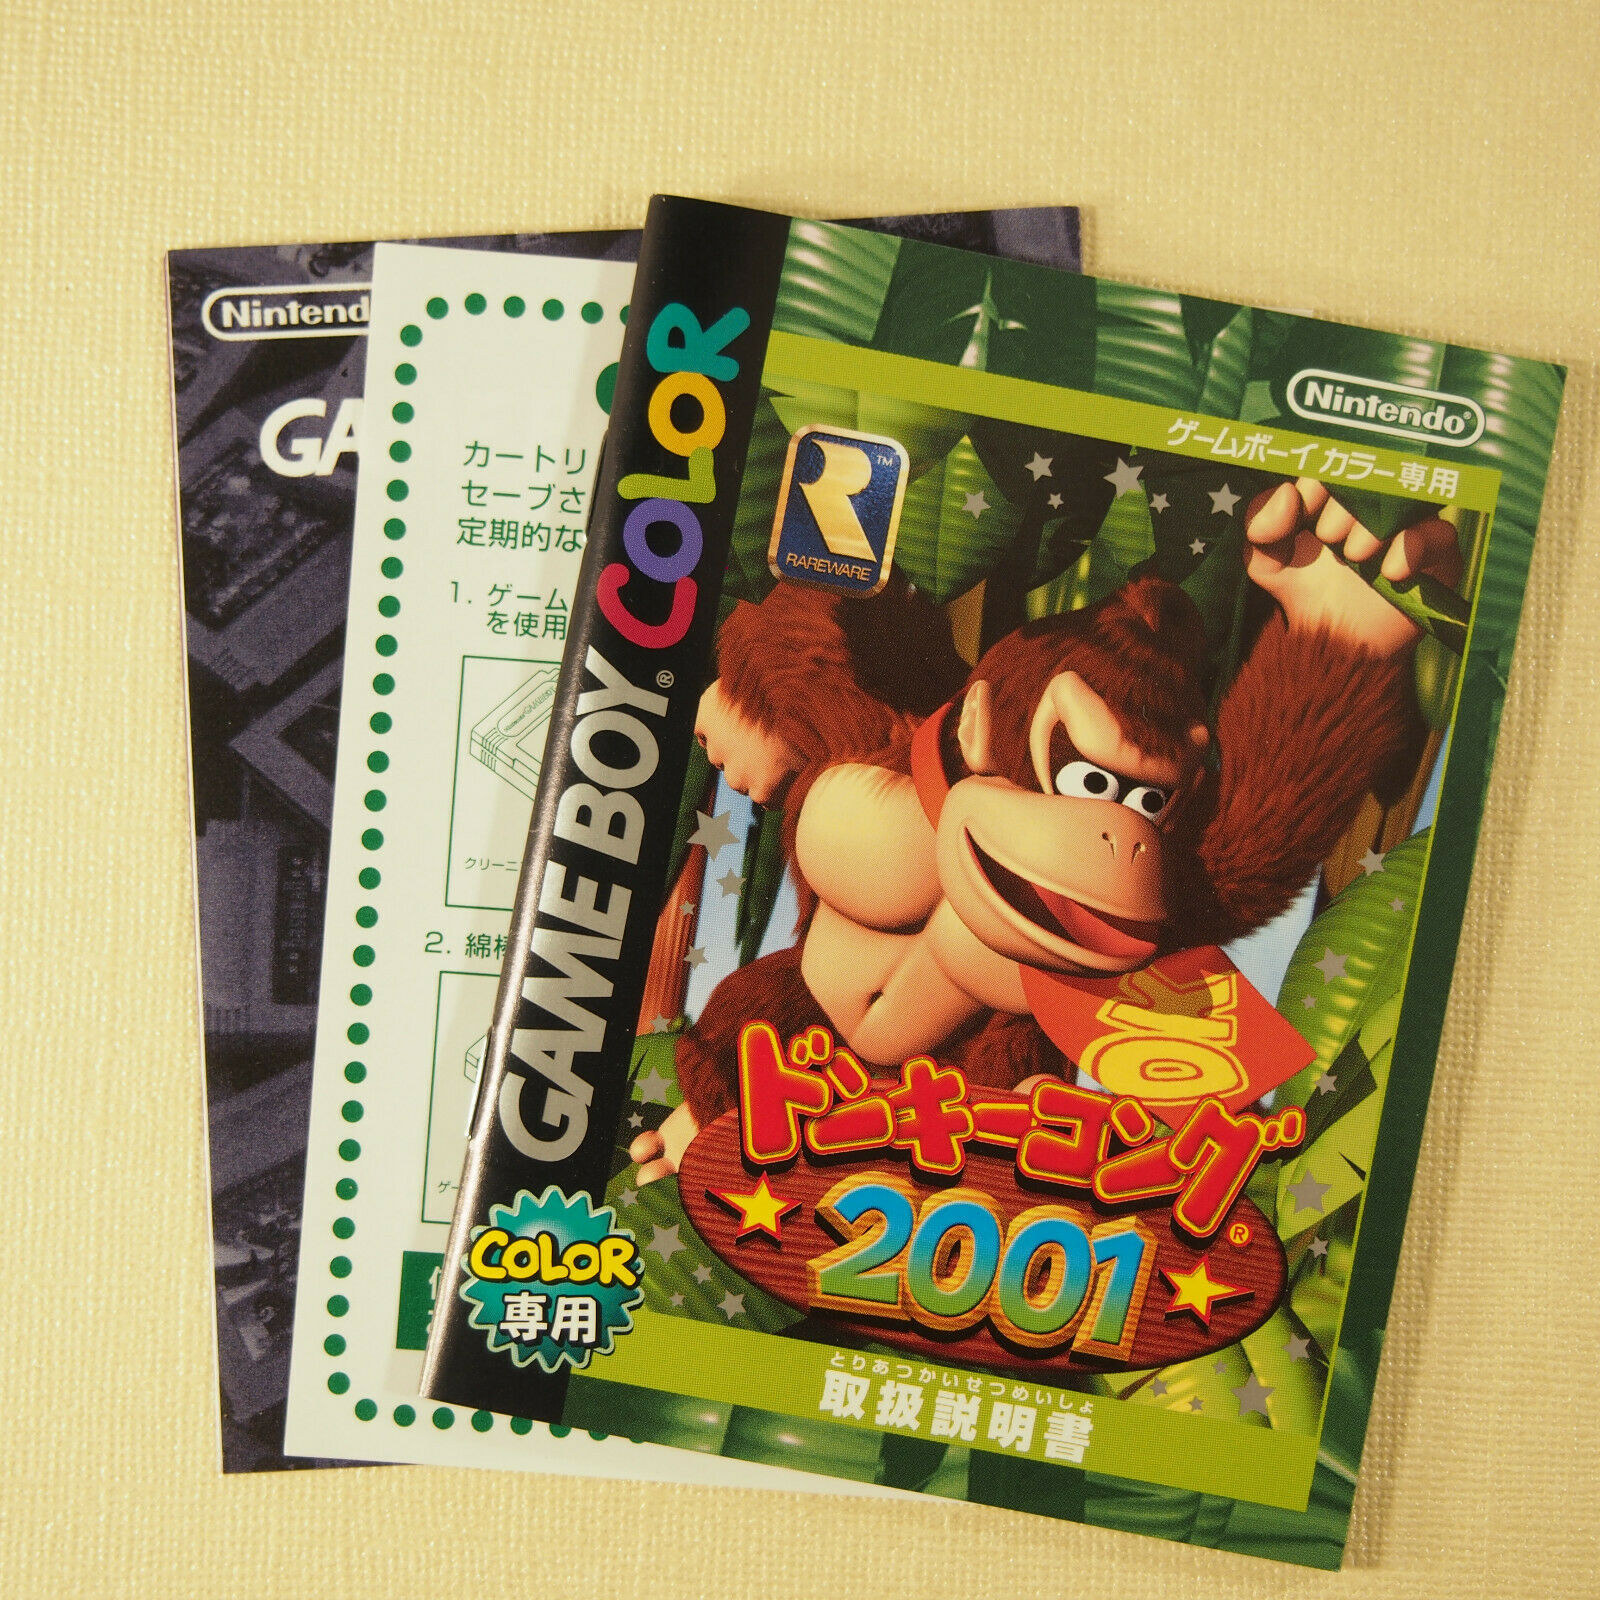 Donkey Kong 2001 Complete in Box (Nintendo Gameboy Color GBC, 2001) Japan image 8